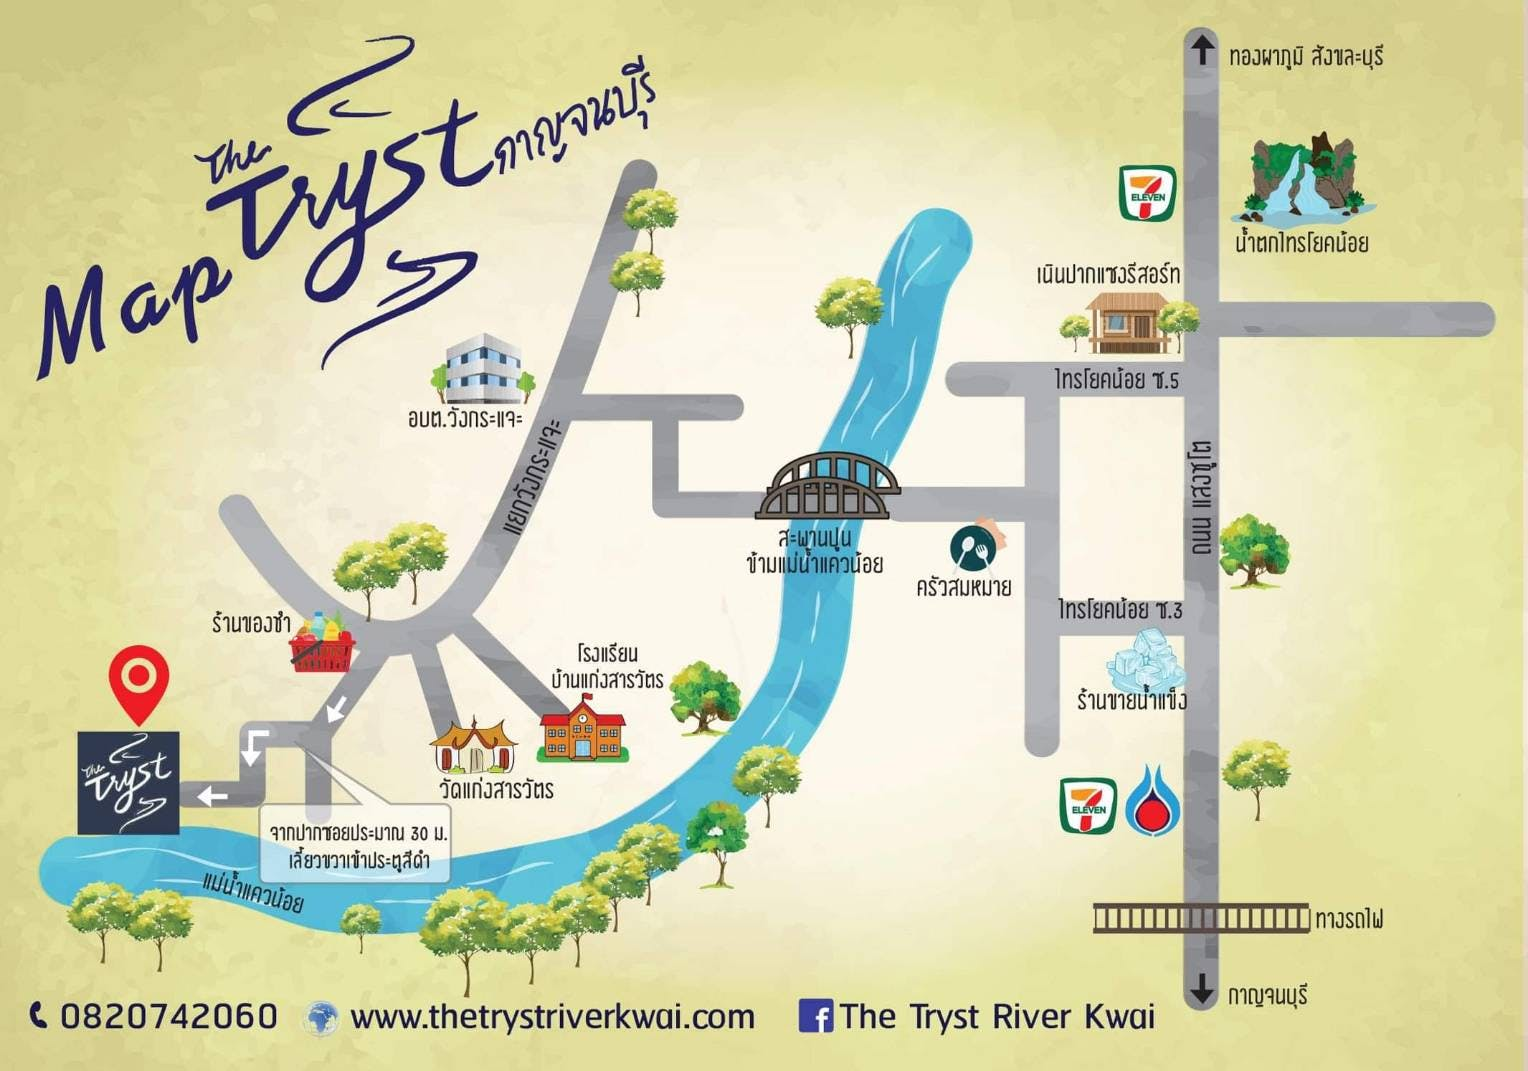 the tryst map